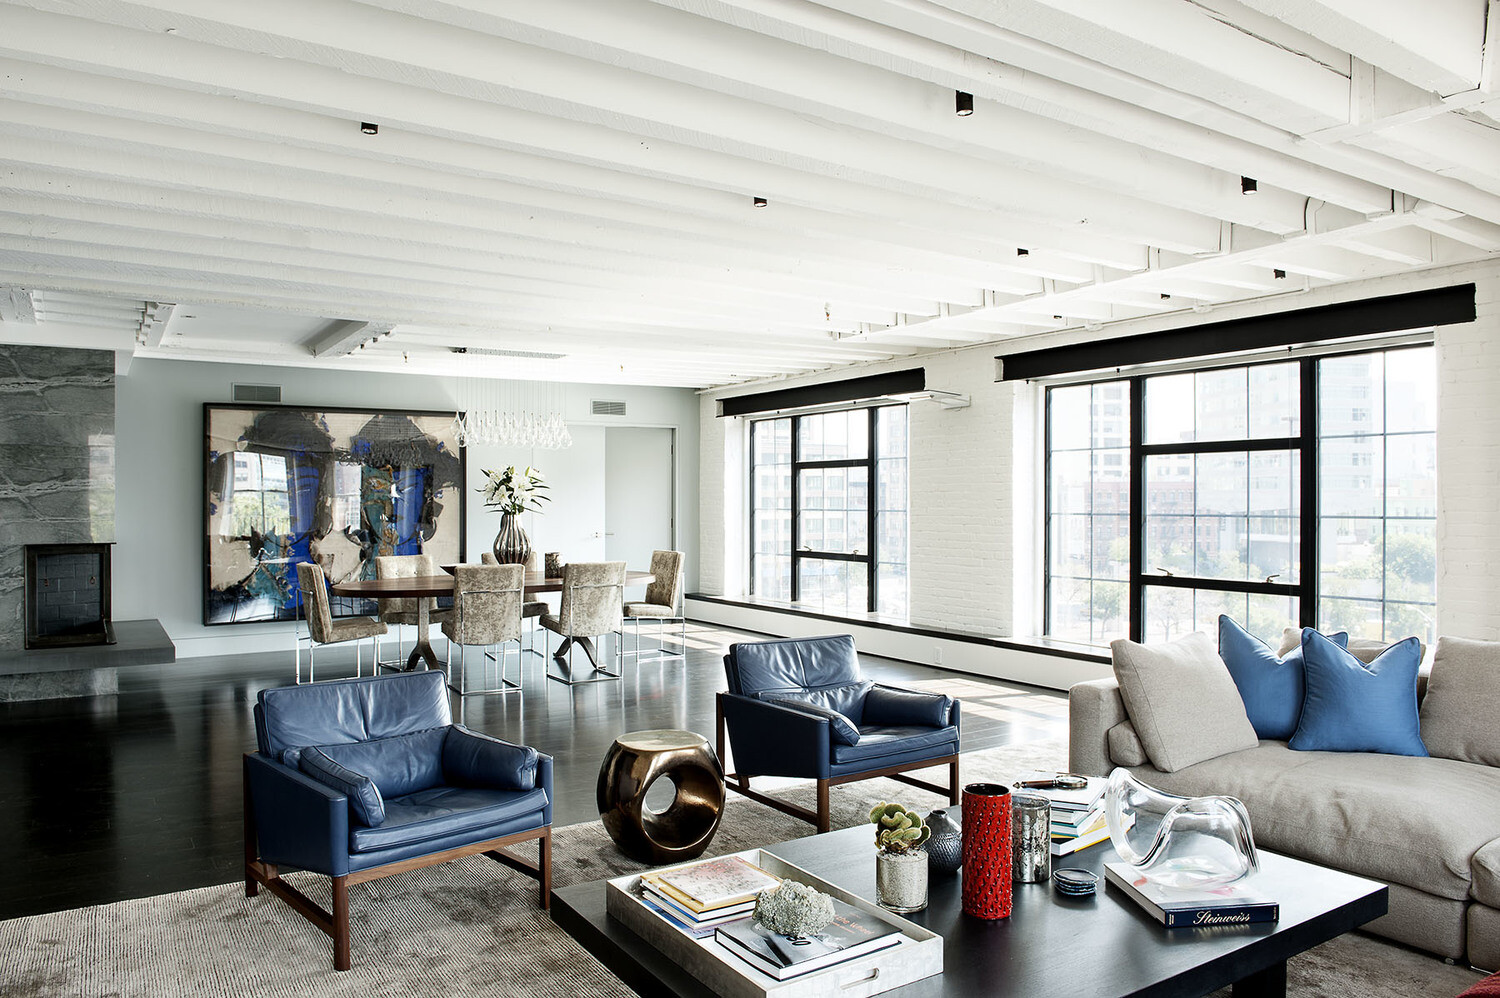 Laight Street Loft in New York by DHD Architecture